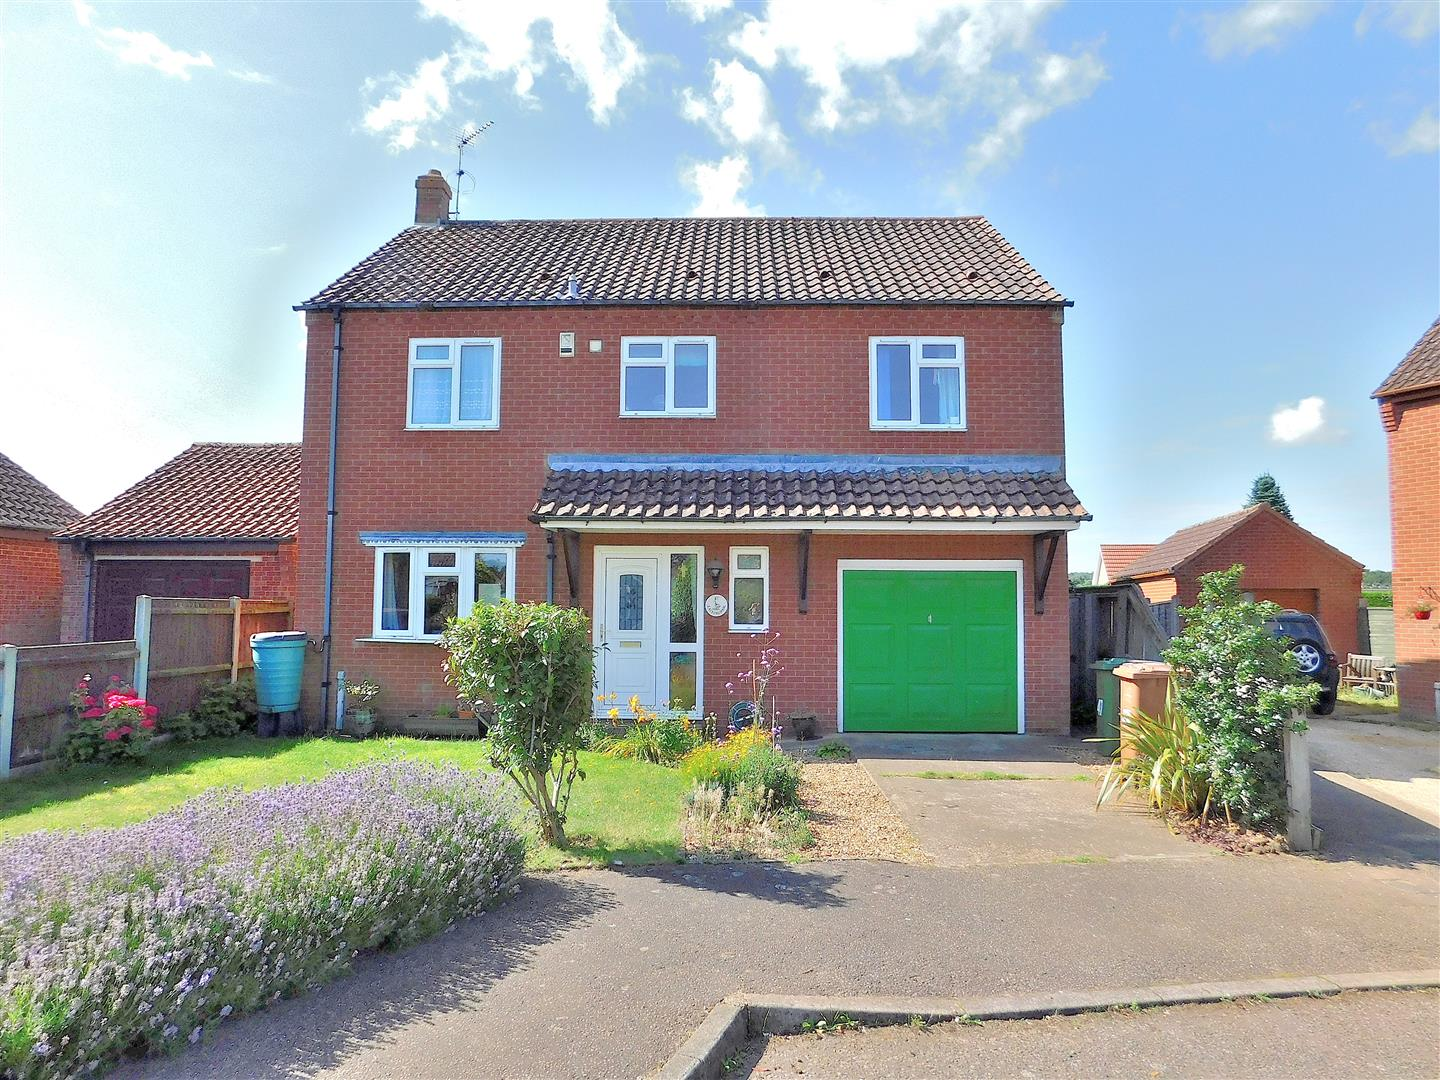 4 bed detached house for sale in King's Lynn, PE31 6JT 0